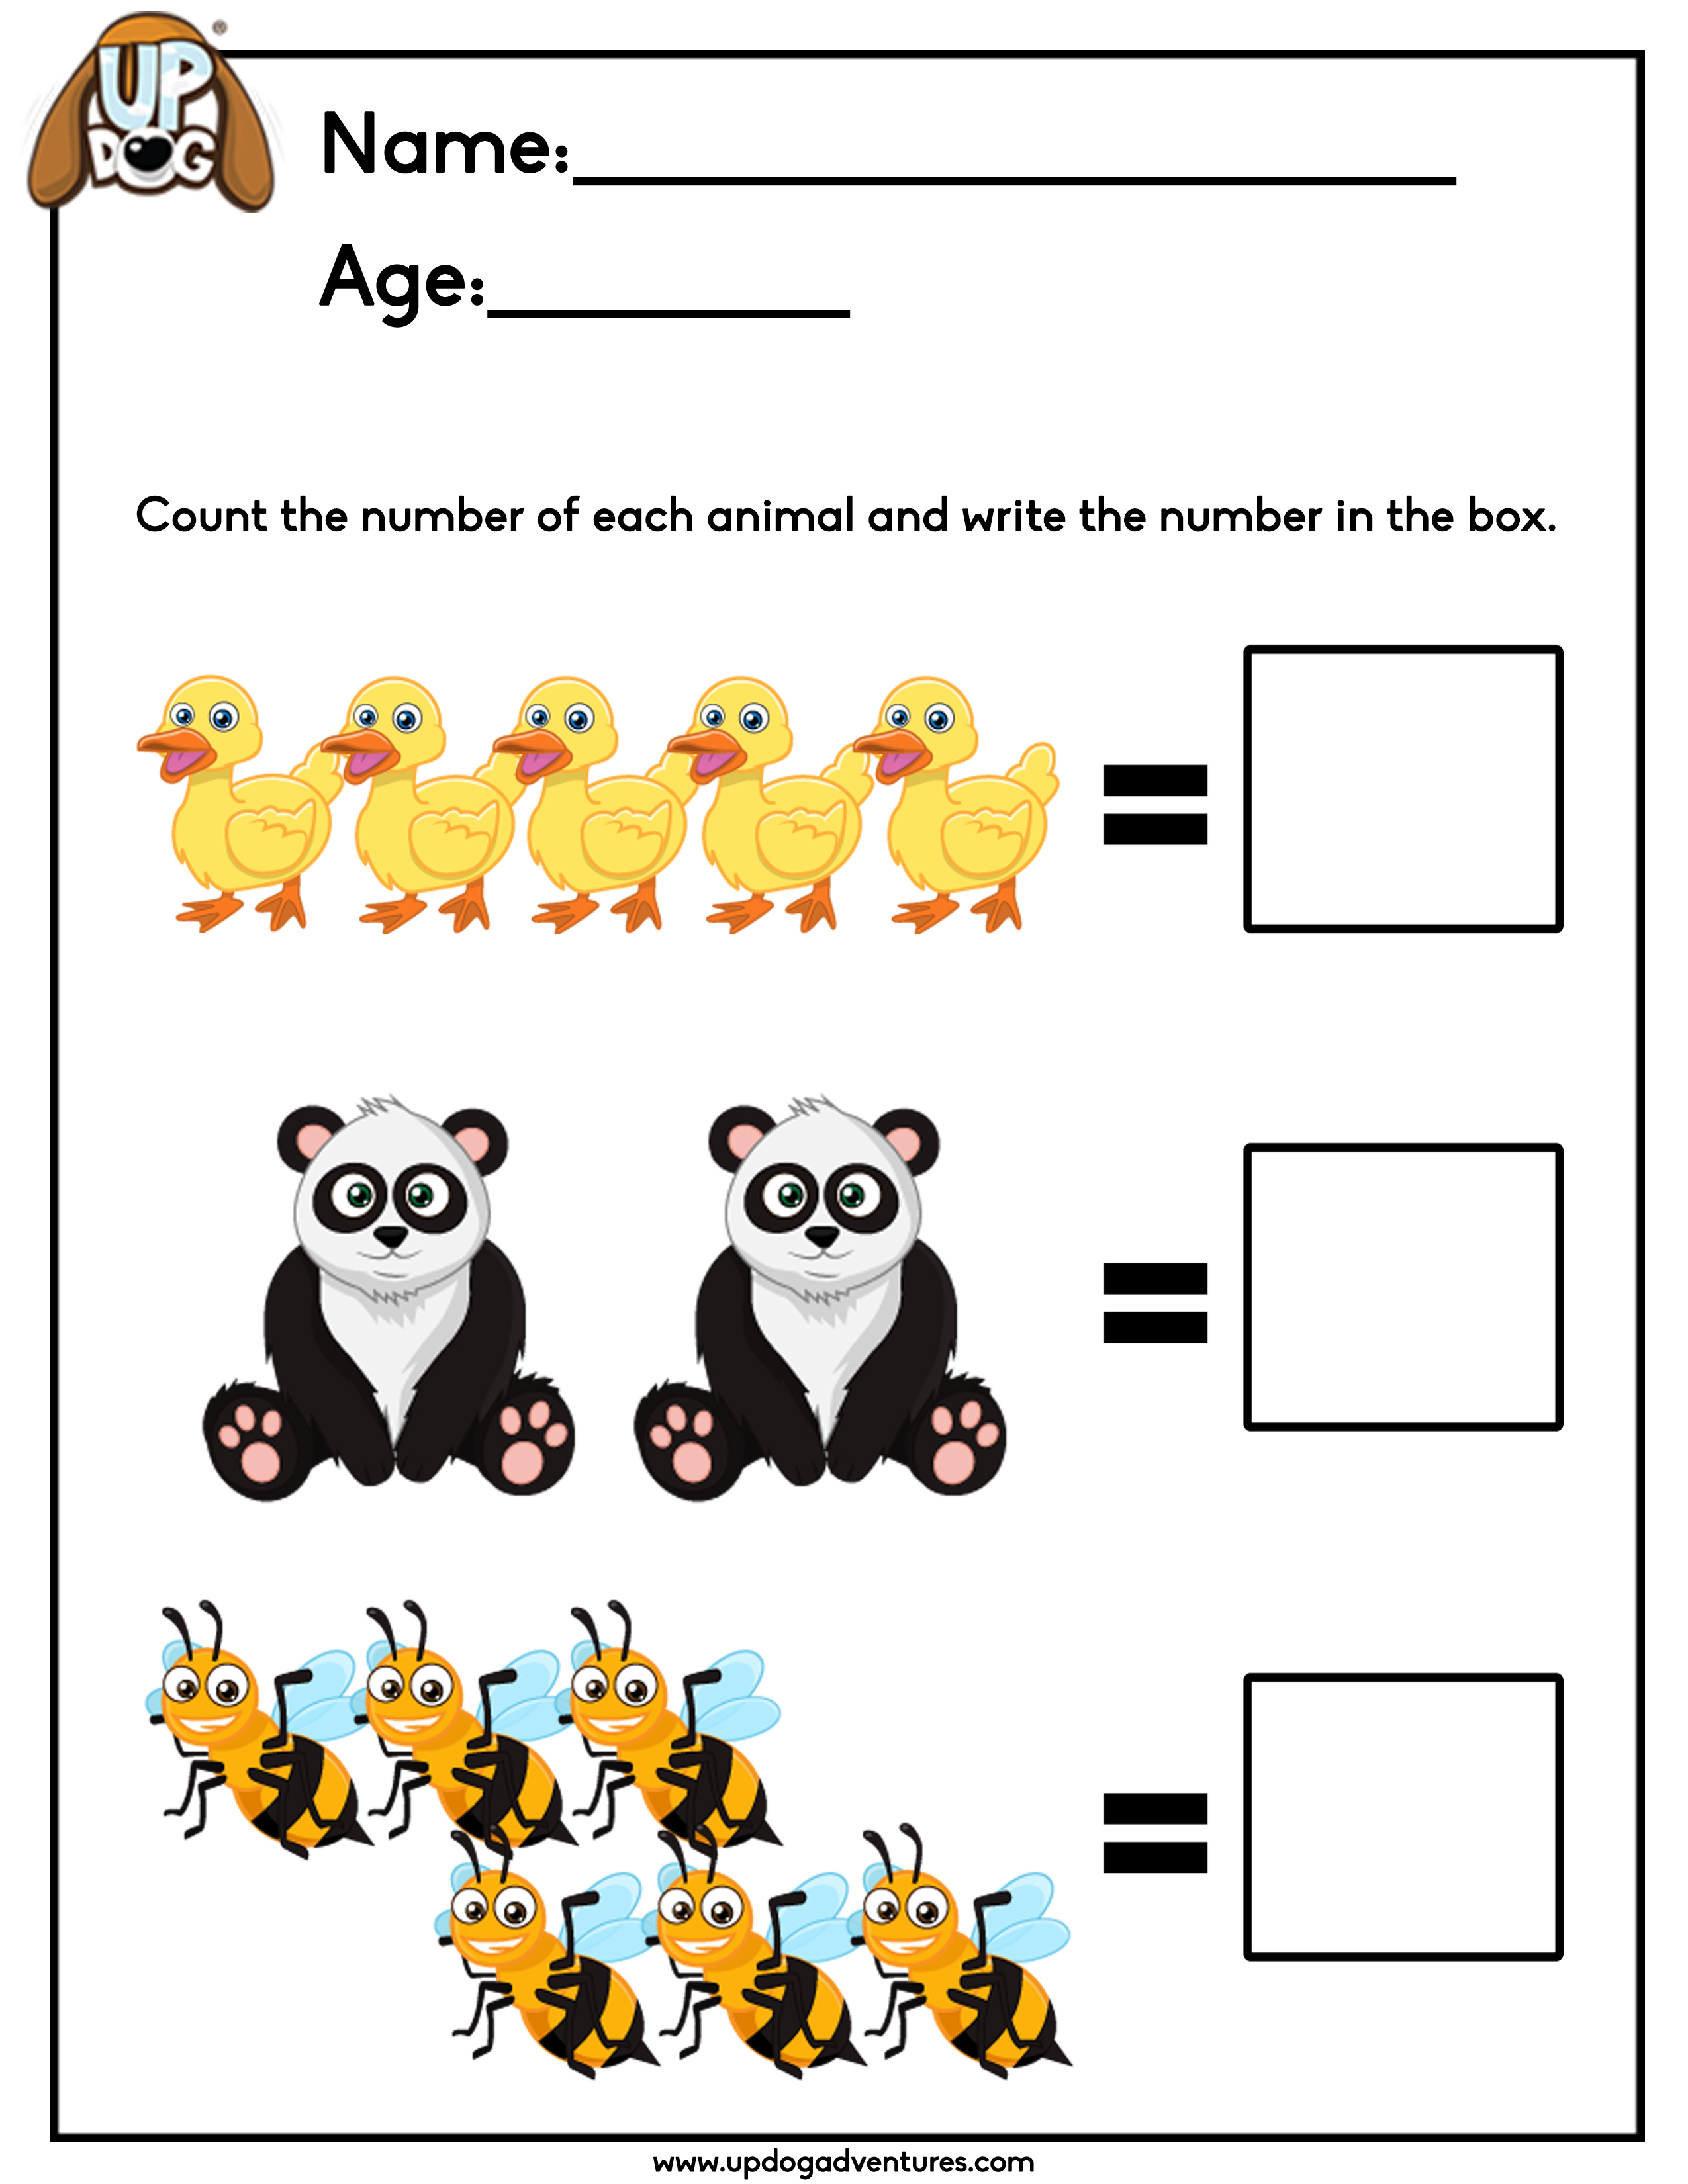 mathematics-count-the-animals-1